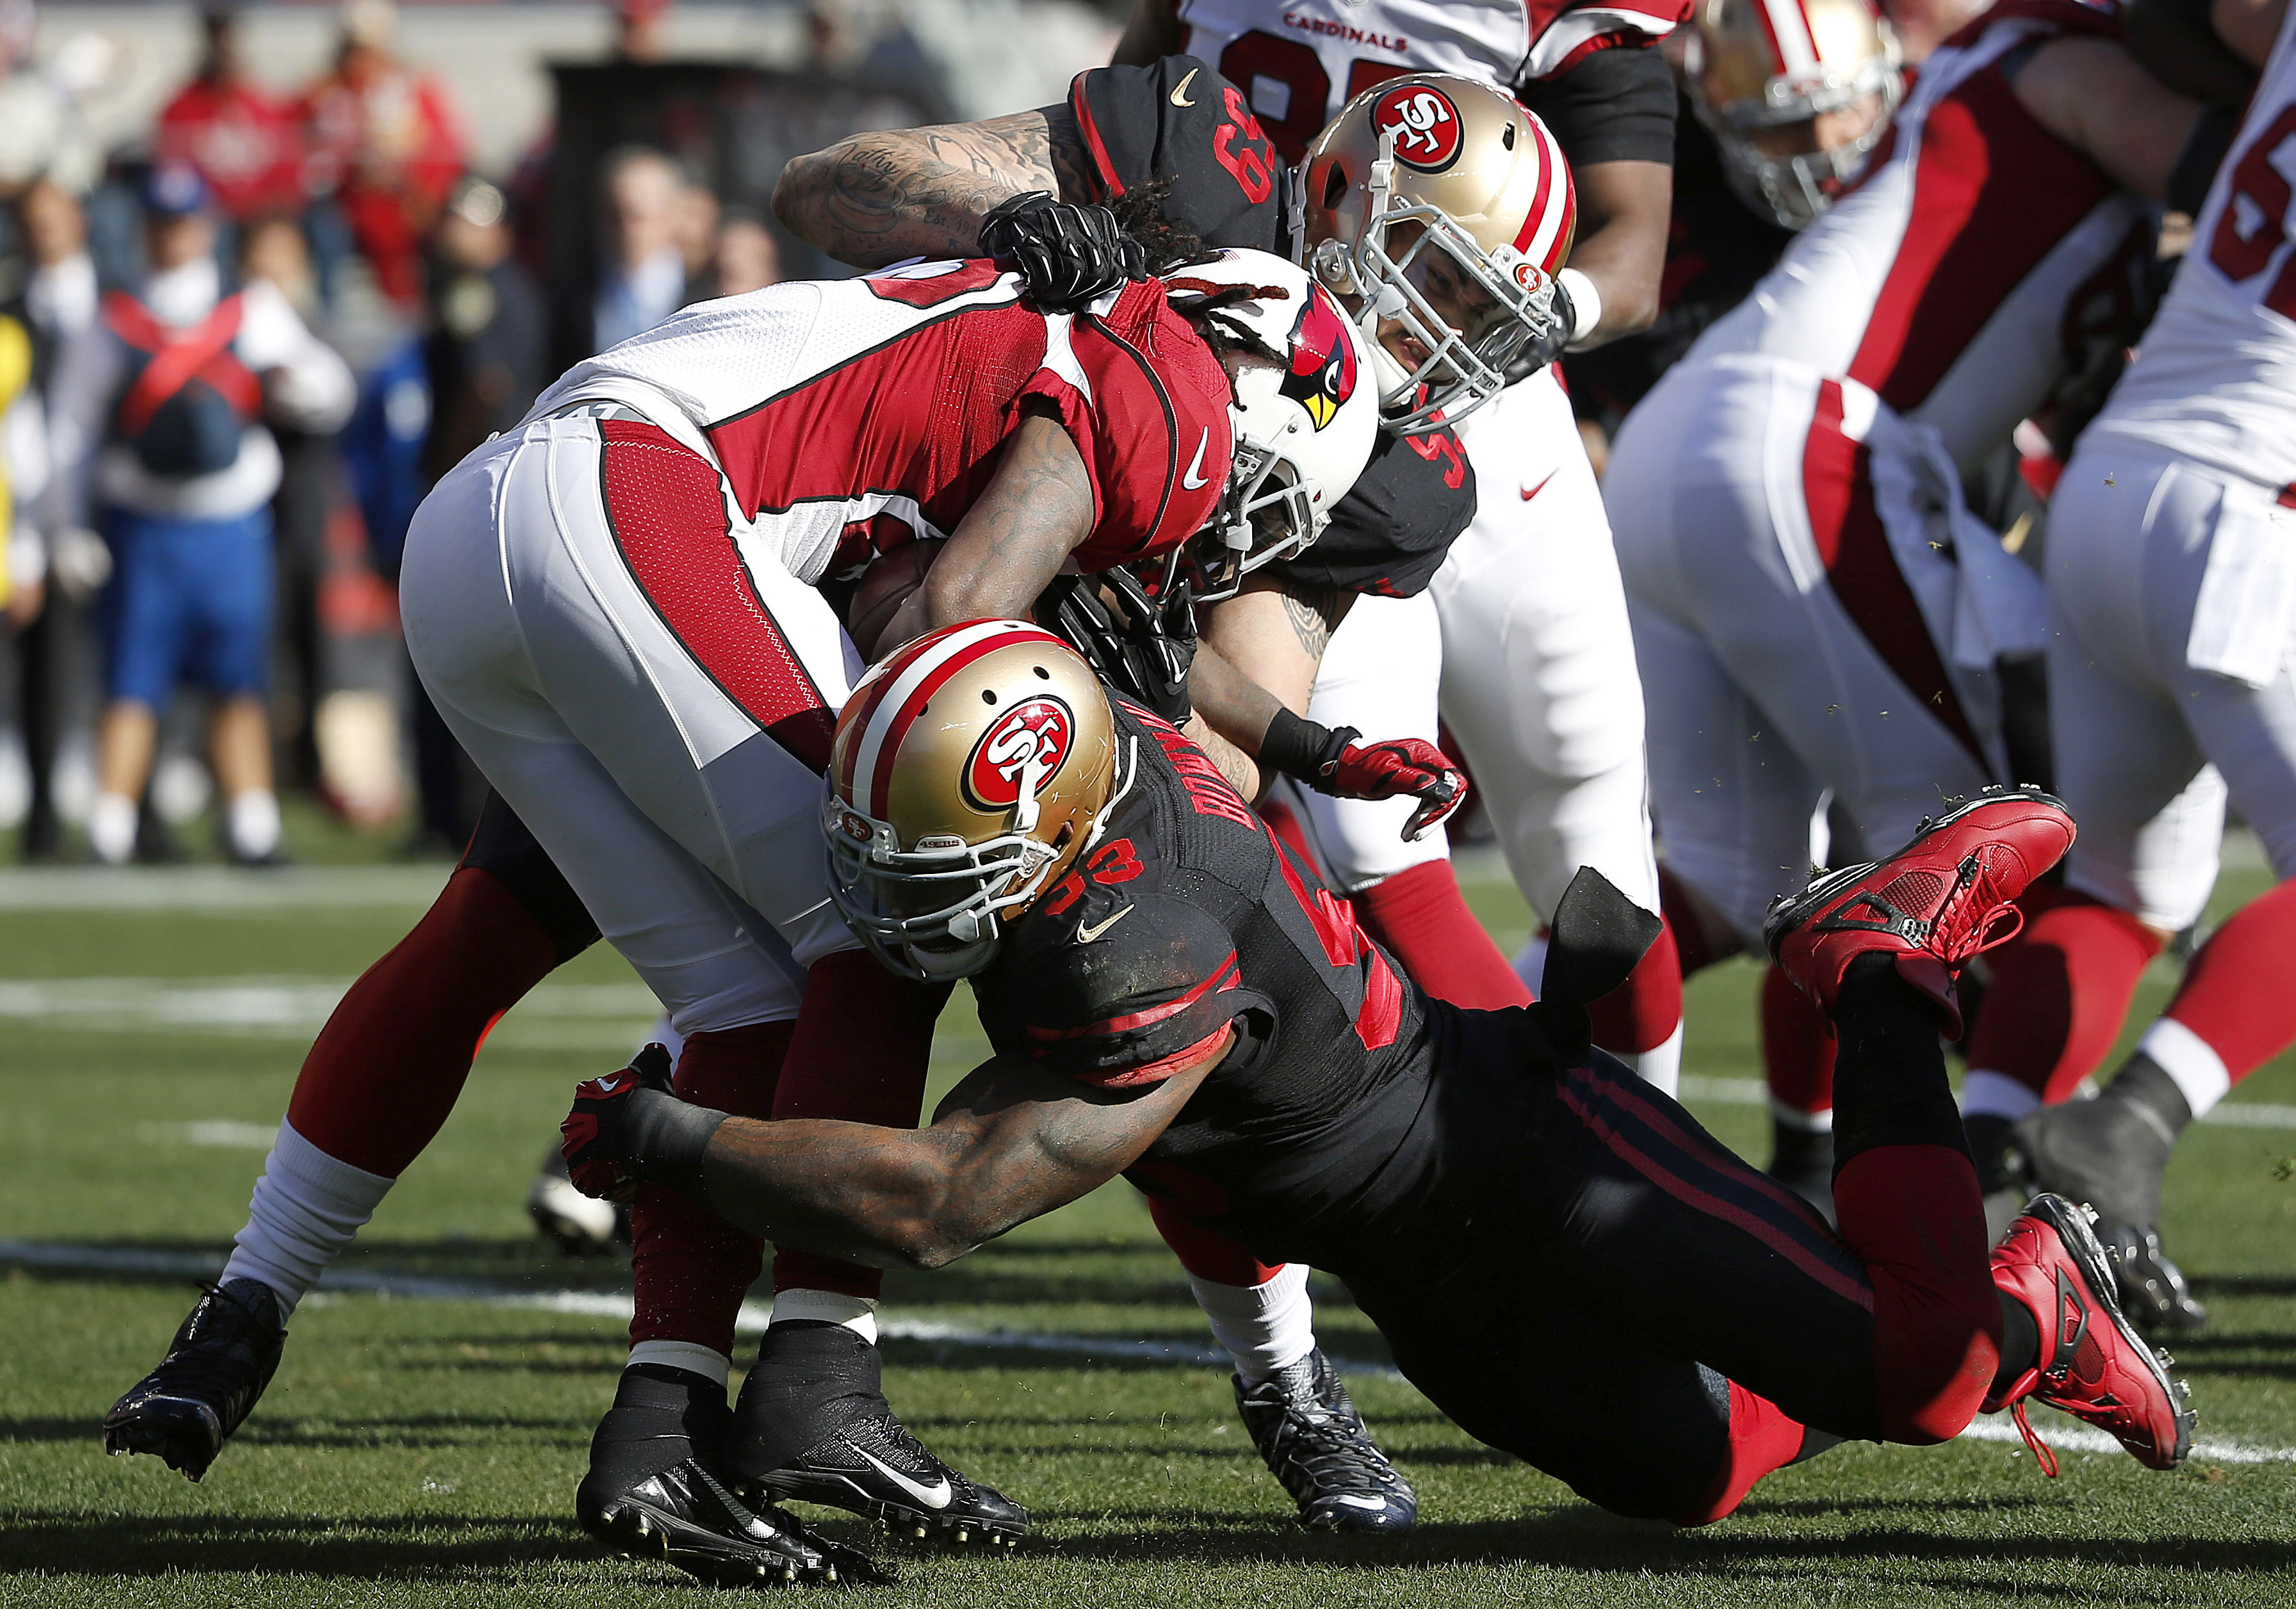 Arizona Cardinals running back Chris Johnson, center, is tackled by San Francisco 49ers linebacker Aaron Lynch (59) and linebacker NaVorro Bowman (53) during the first half of an NFL football game in Santa Clara, Calif., Sunday, Nov. 29, 2015. (AP Photo/T